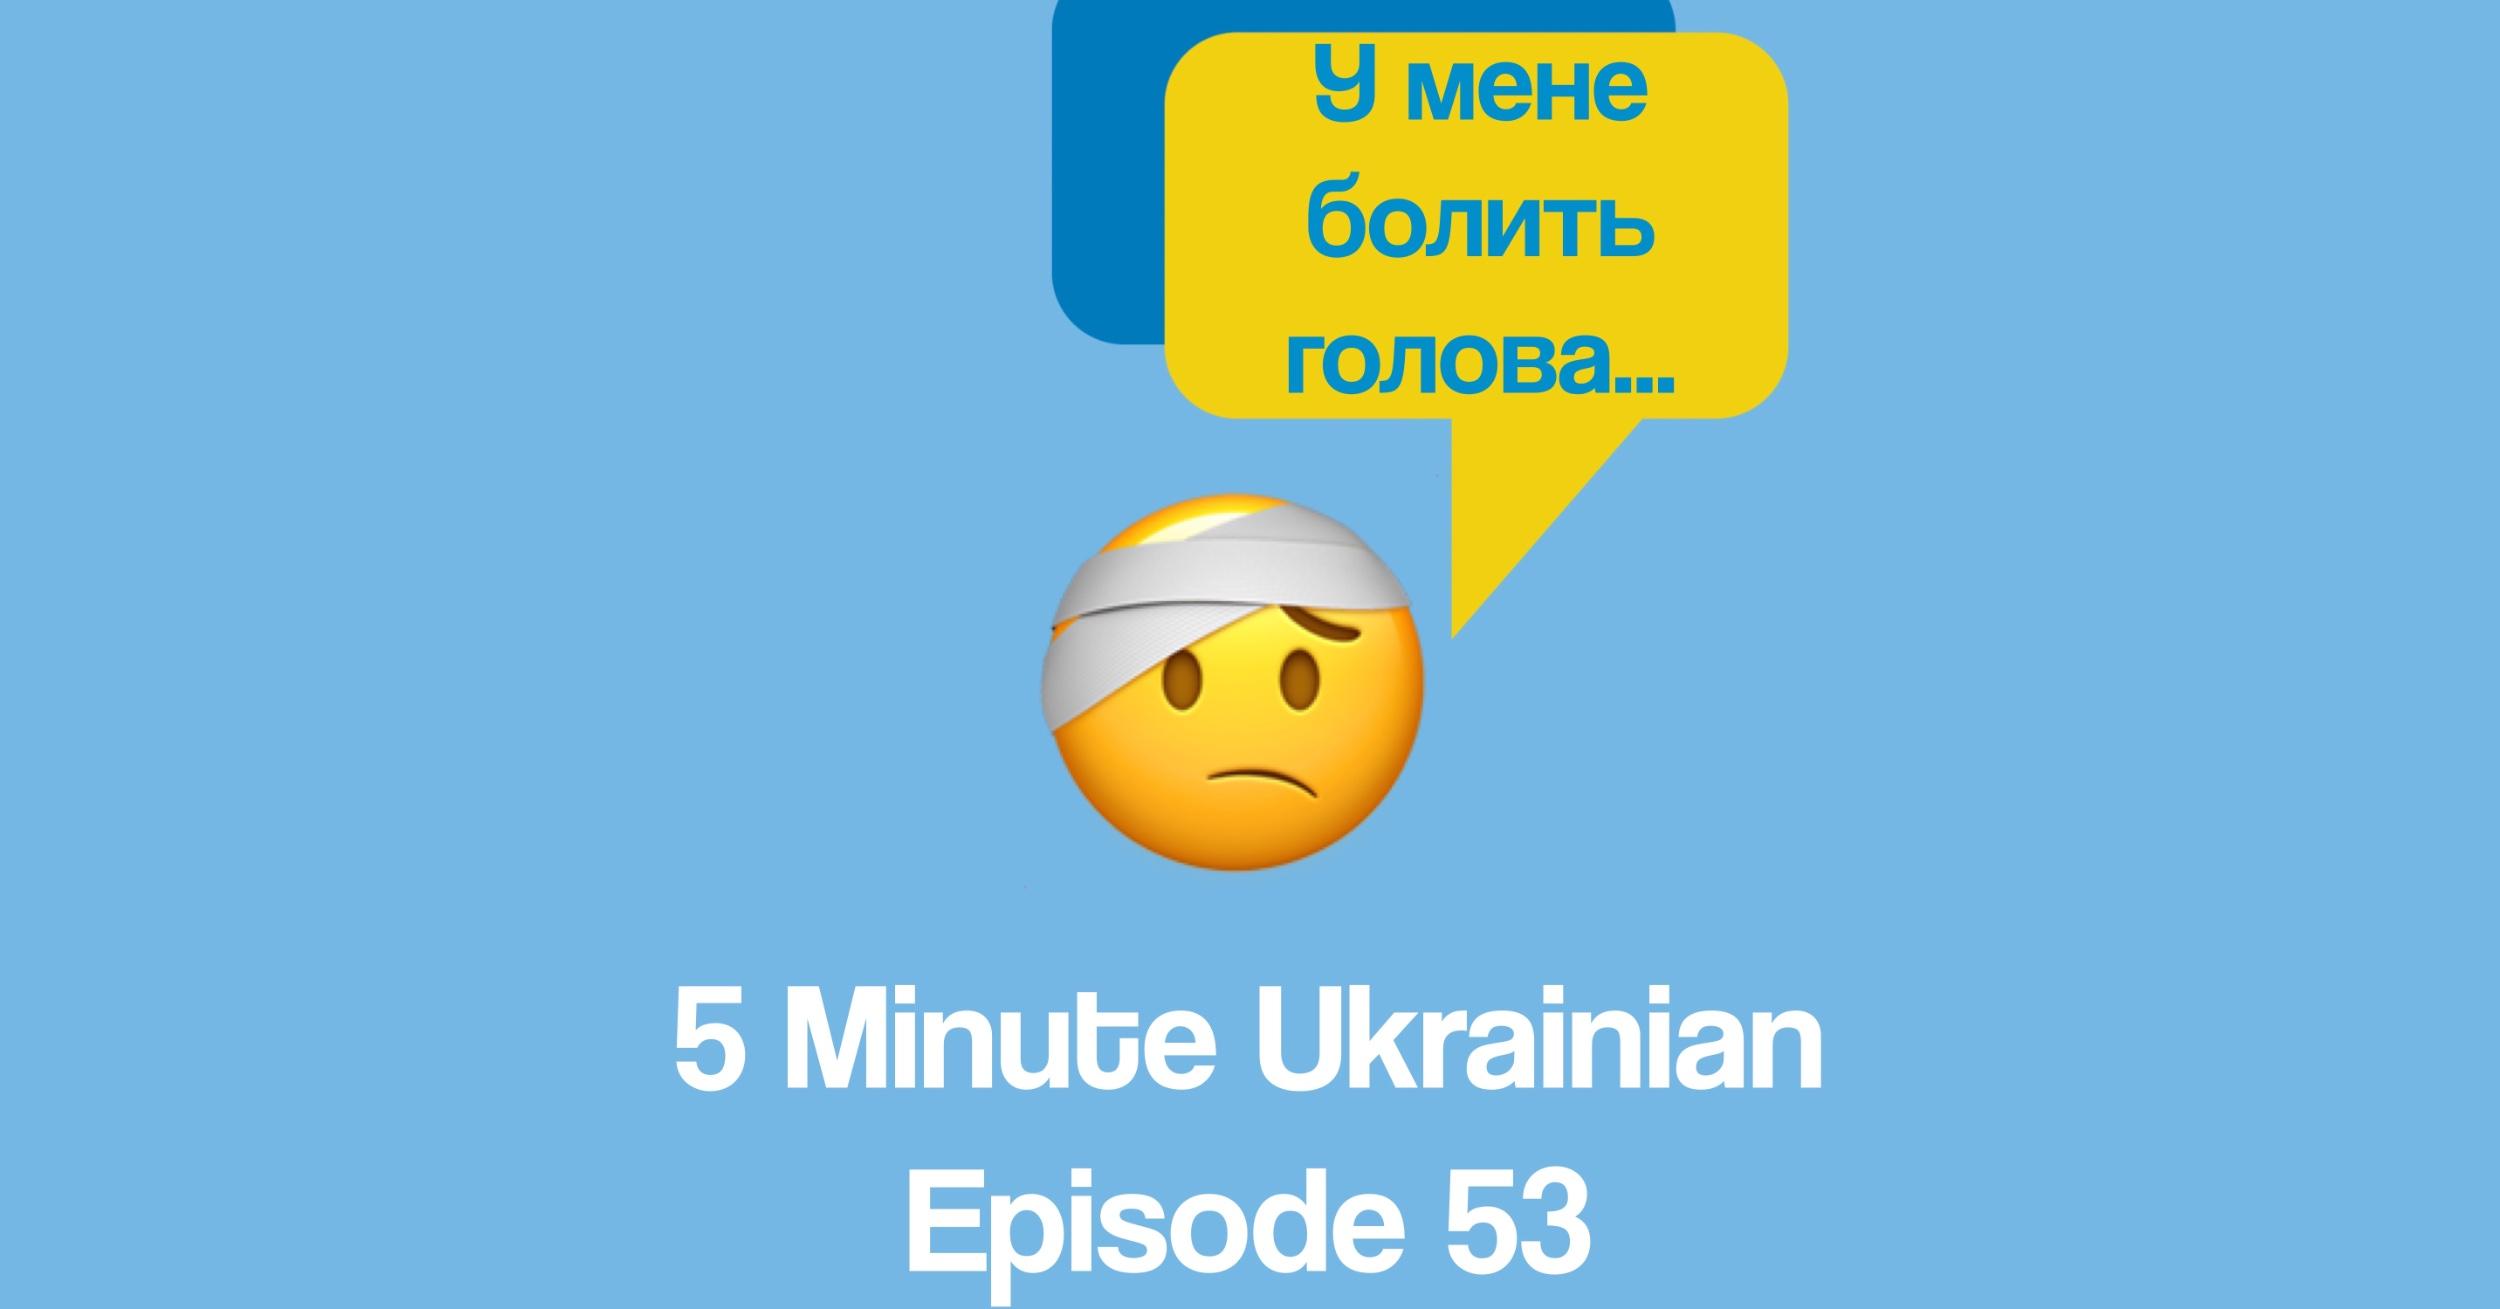 what hurts you in Ukrainian